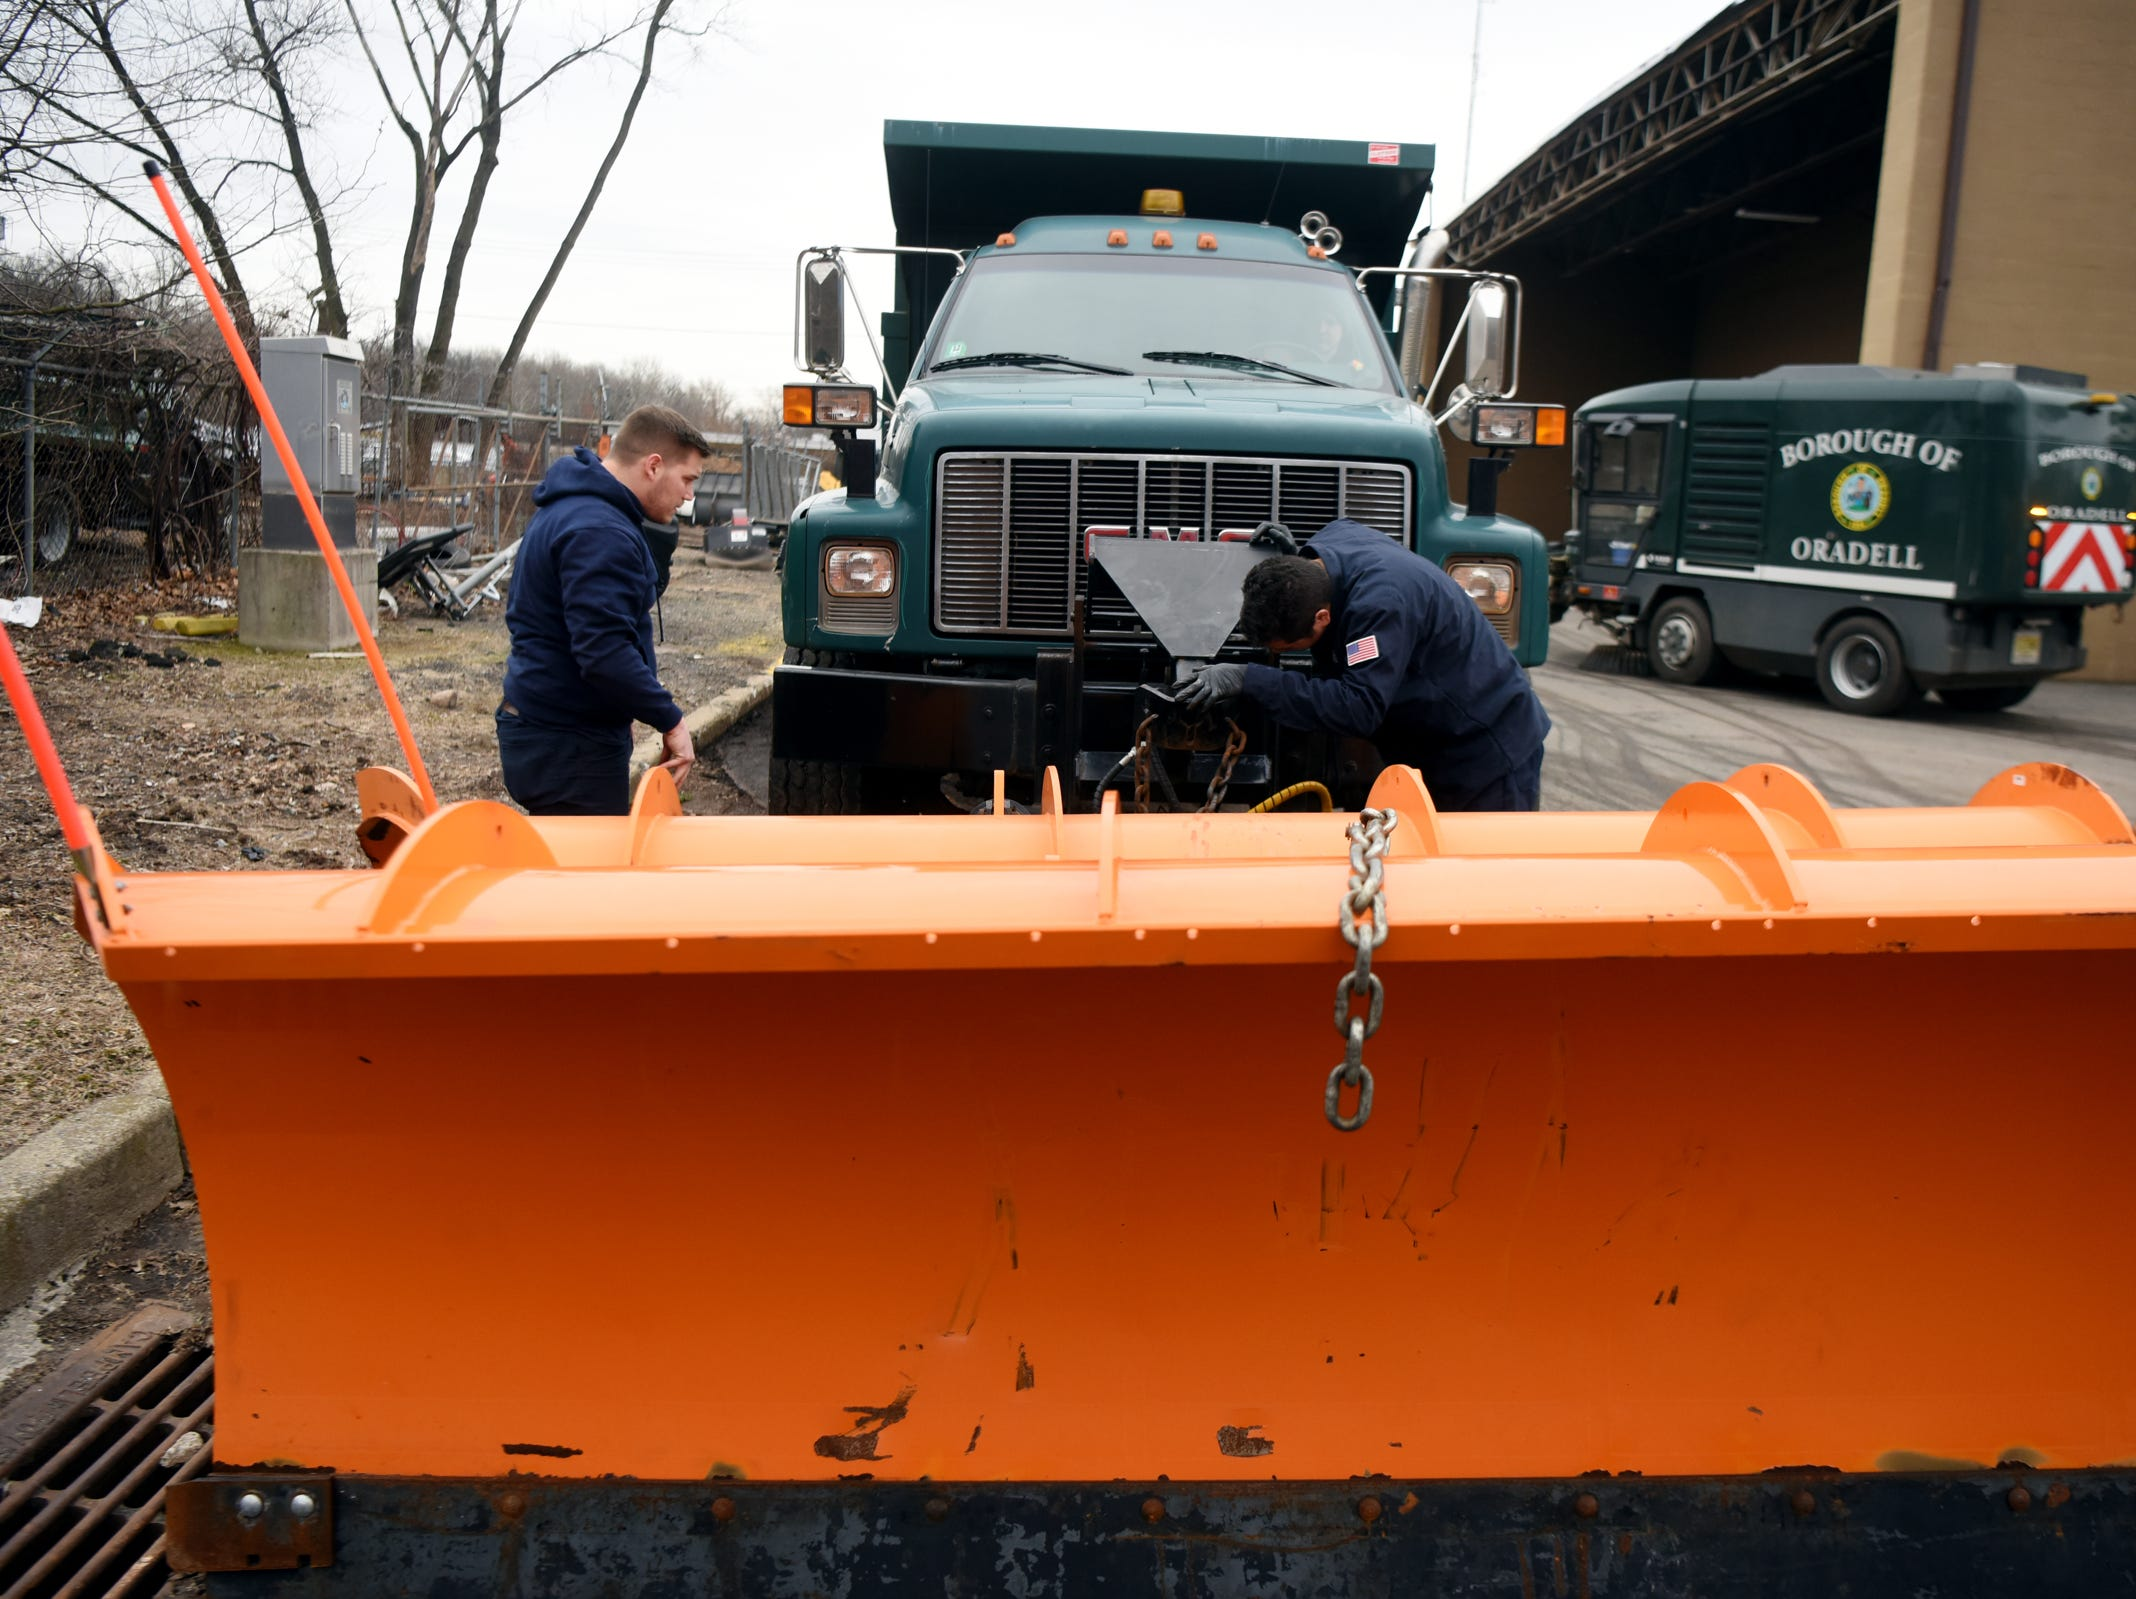 Borough of Oradell Department of Public Works employees Gordon Kohles and Ross Rhein attach a snow plow to a truck on Monday, February 11, 2019 in preparation for a winter storm that could bring snow, ice and freezing rain on Tuesday.